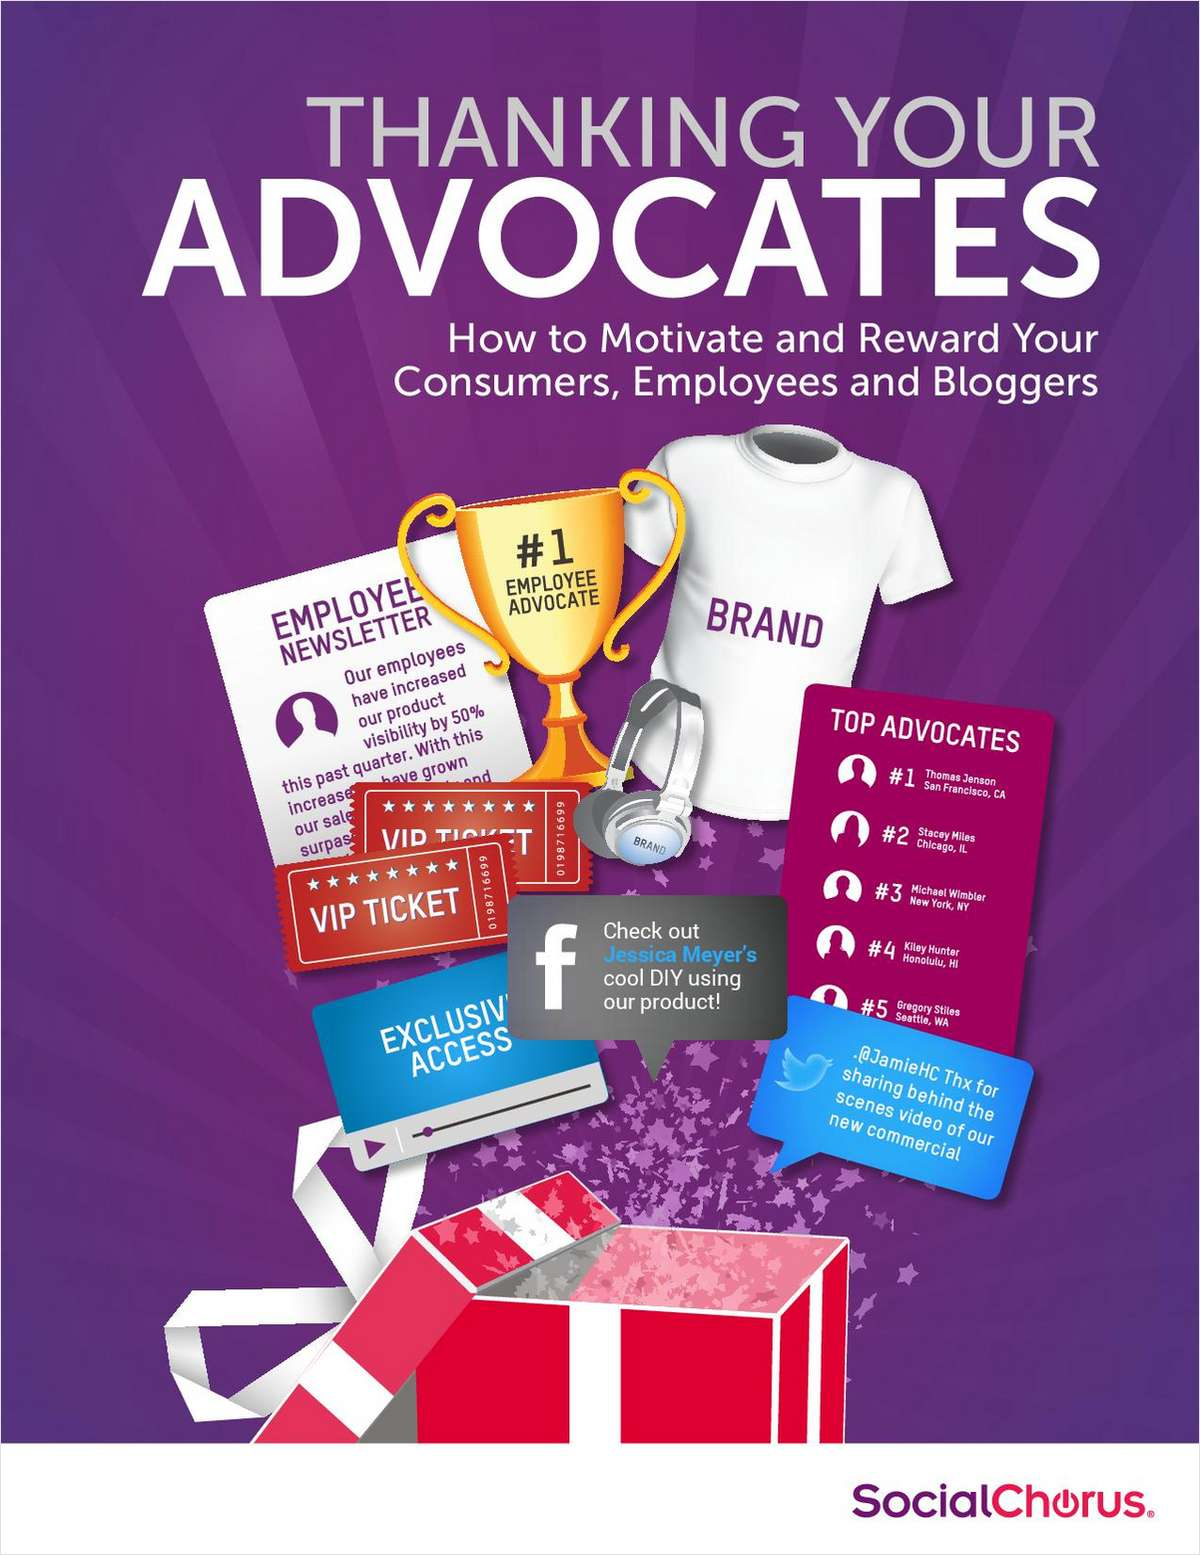 Motivate and Reward Your Customer, Employee and Blogger Advocates